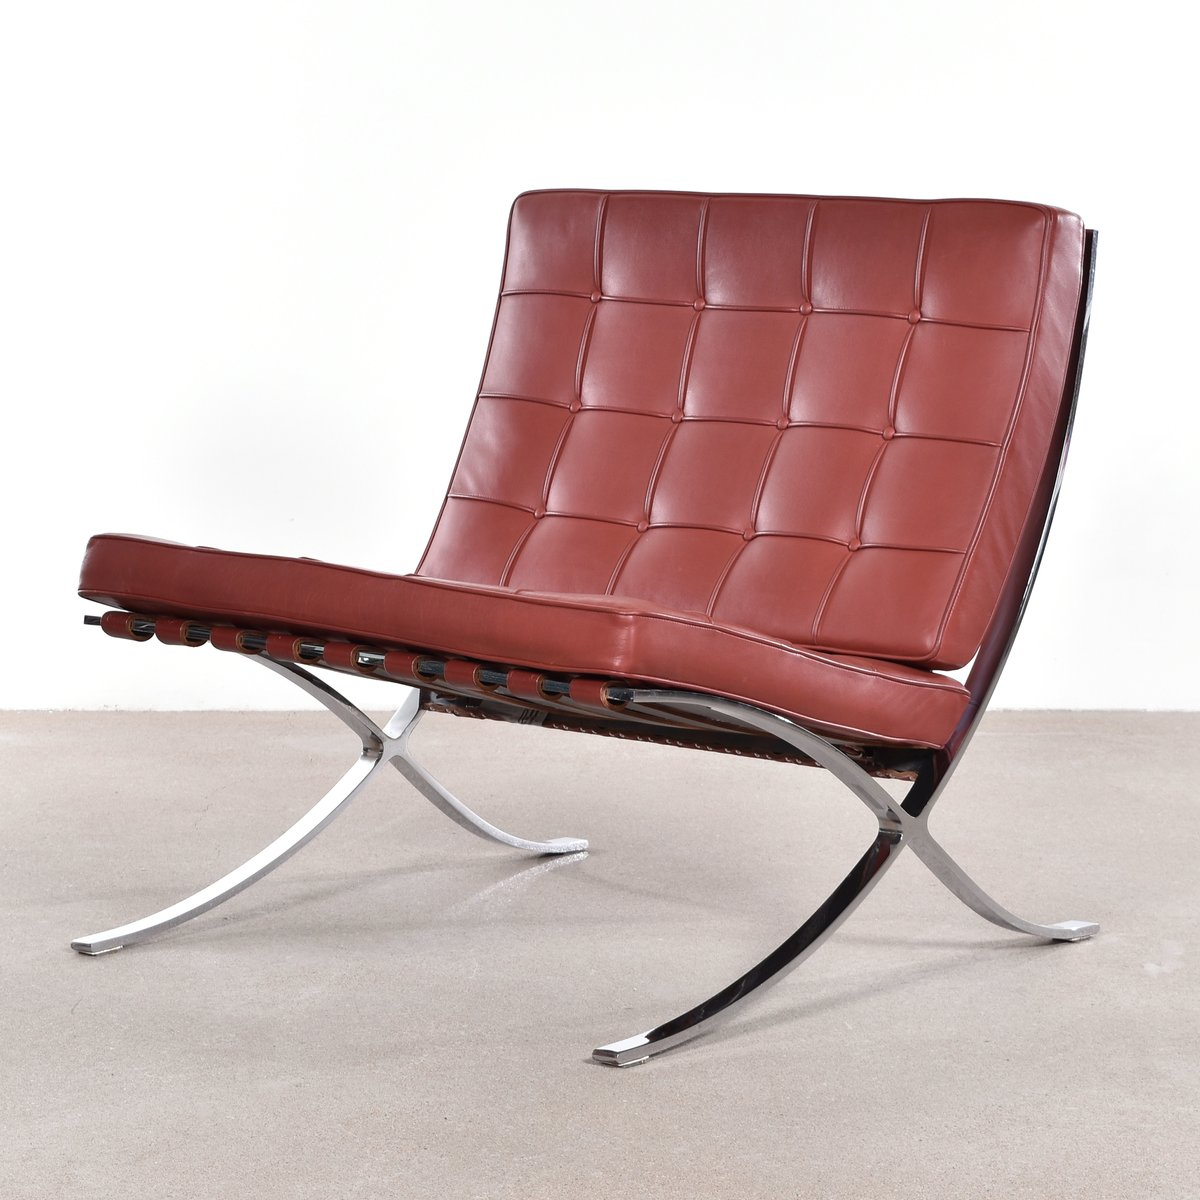 barcelona chairs for sale child rocking chair plans free by ludwig mies van der rohe knoll